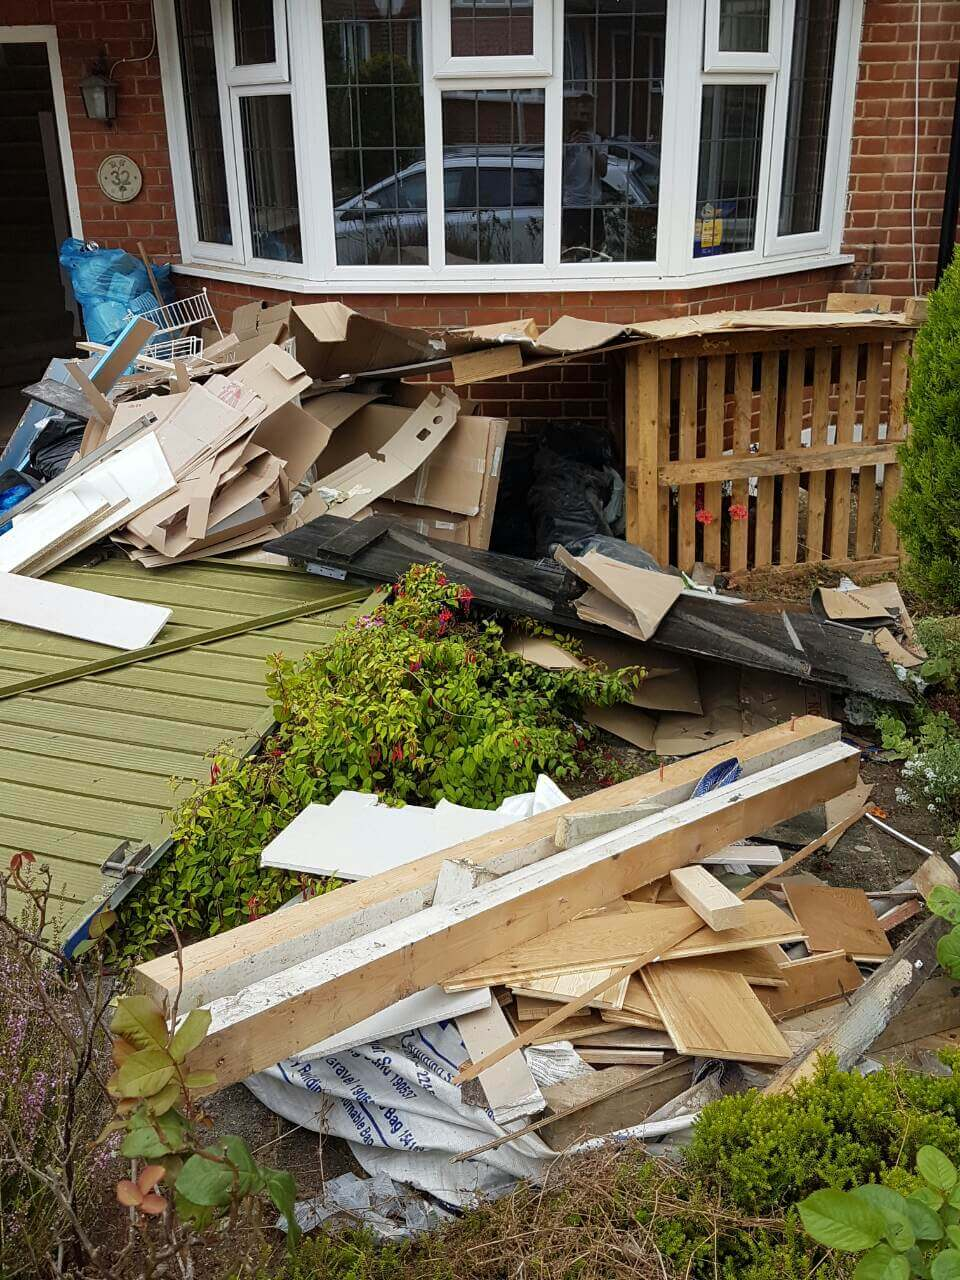 garden waste recycling KT5